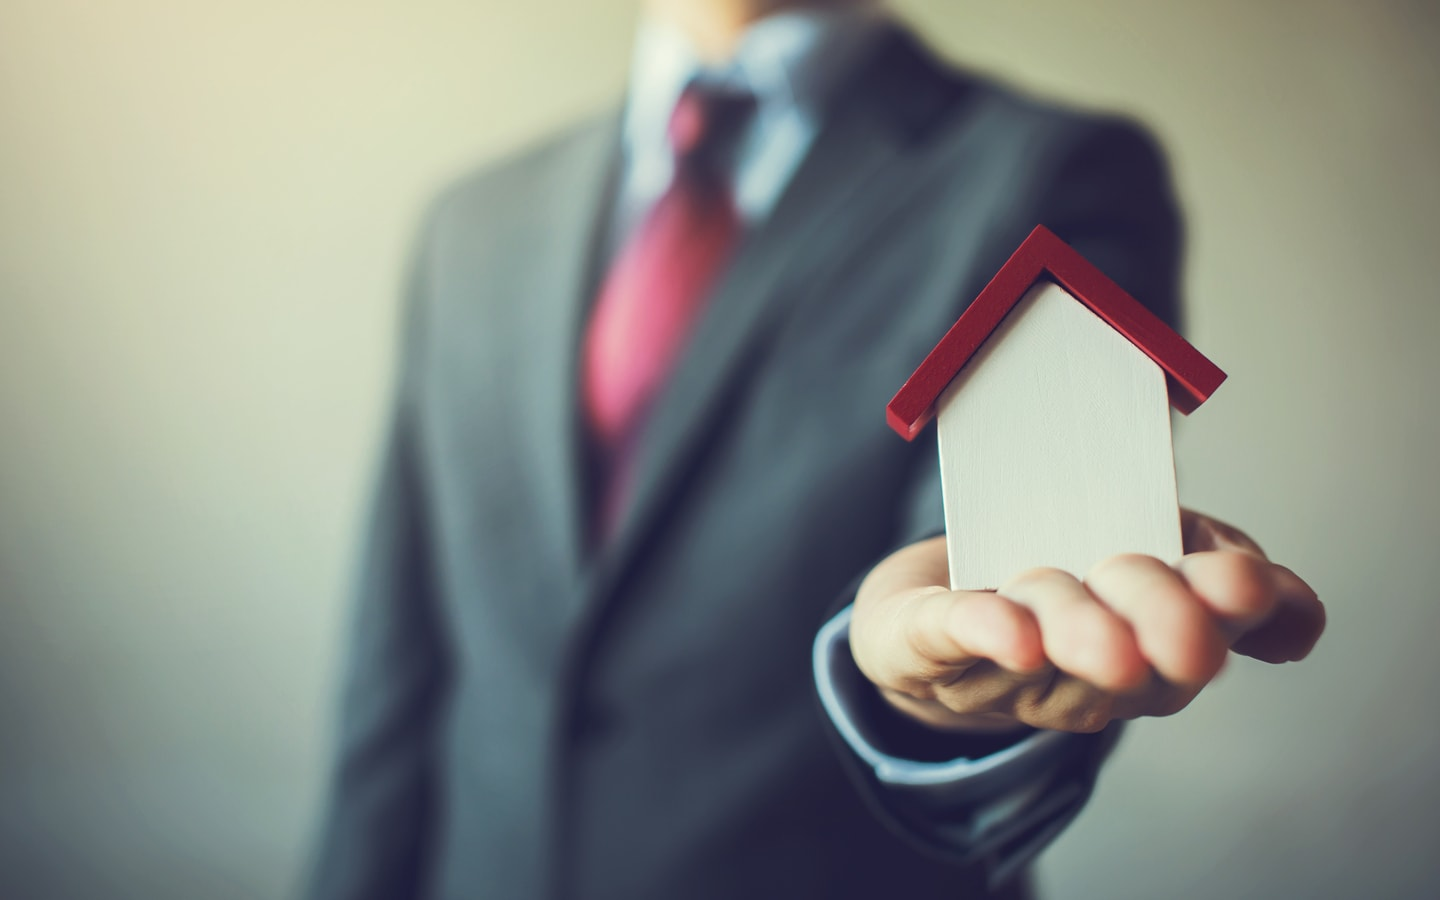 Real estate agent in Dubai for purchasing property